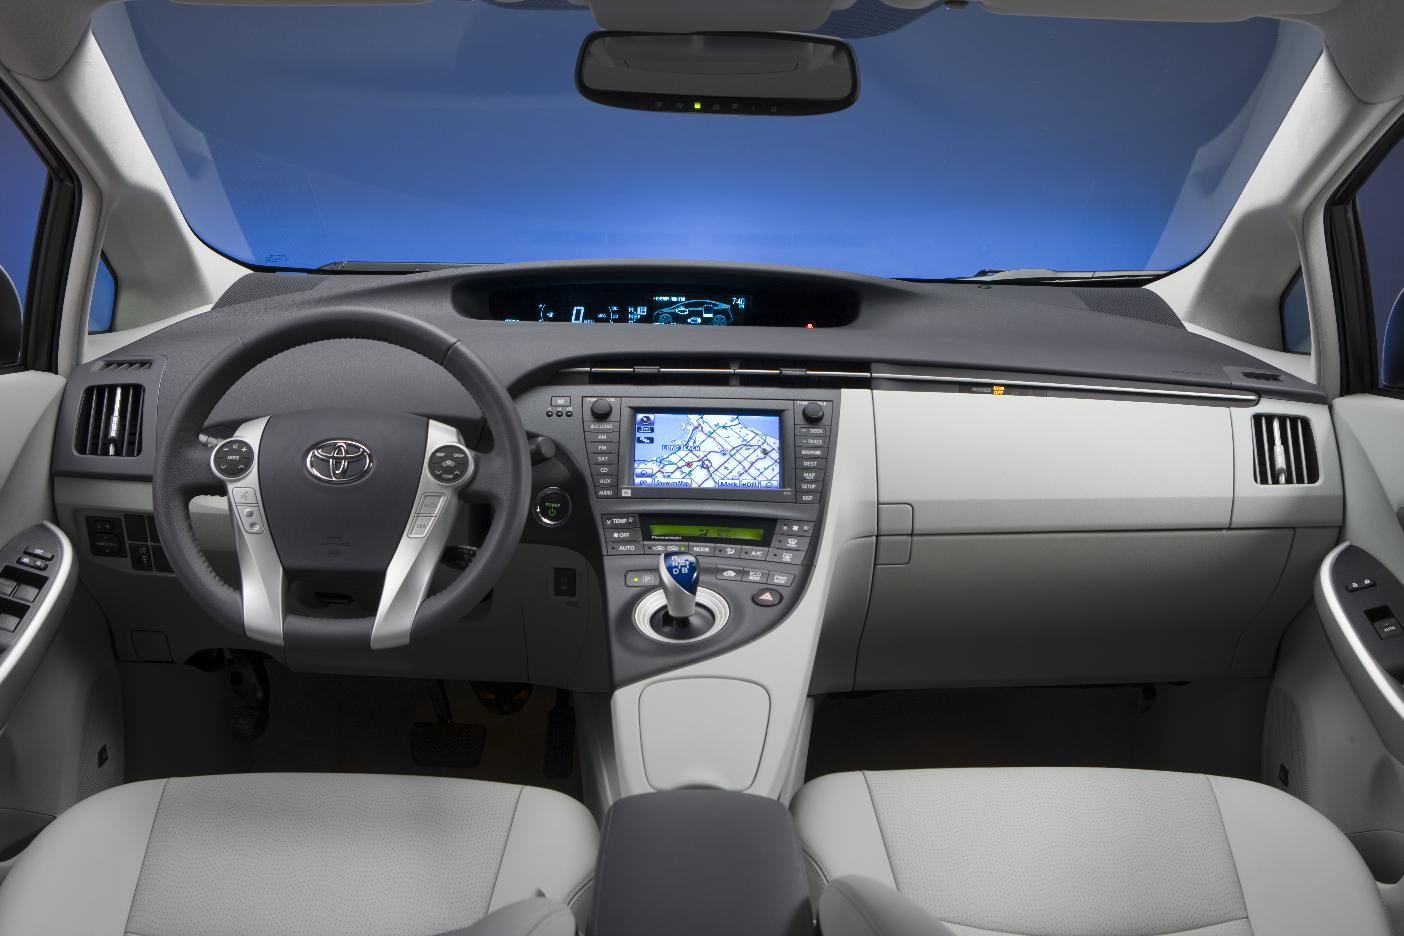 30 Days of the 2010 Toyota Prius: Day 10, Controls and Gauges